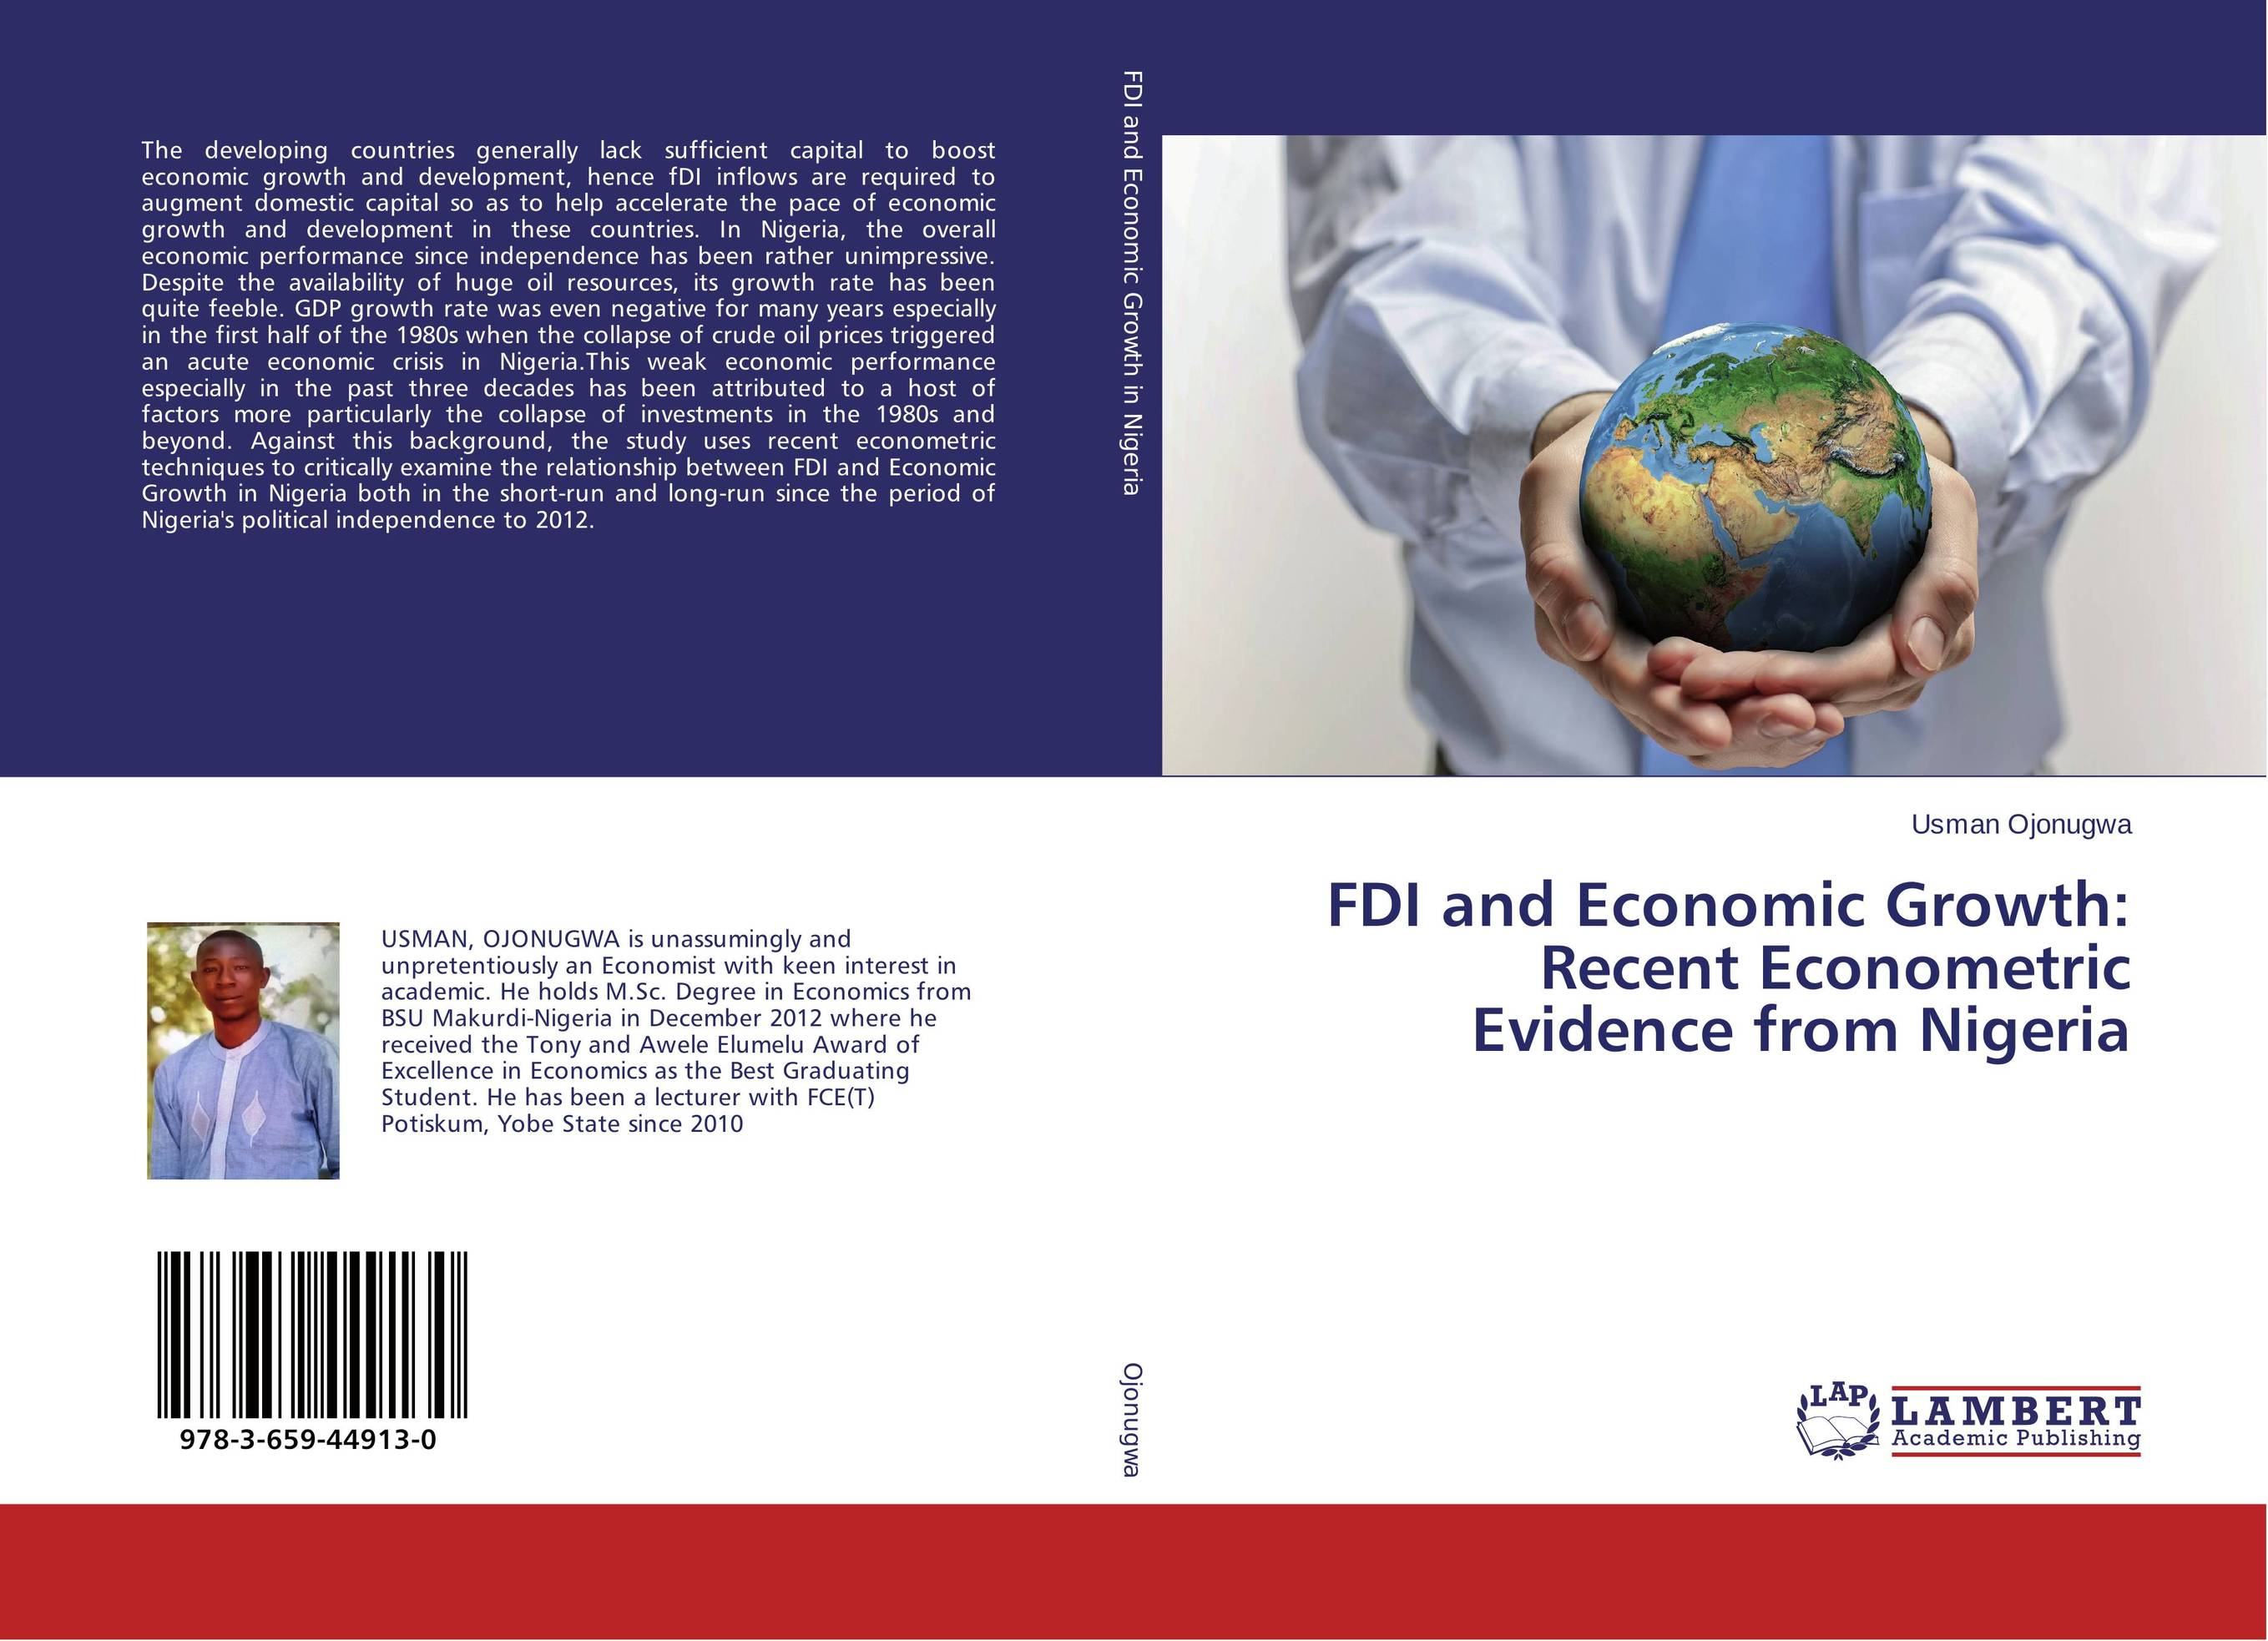 FDI and Economic Growth: Recent Econometric Evidence from Nigeria economic growth in nigeria